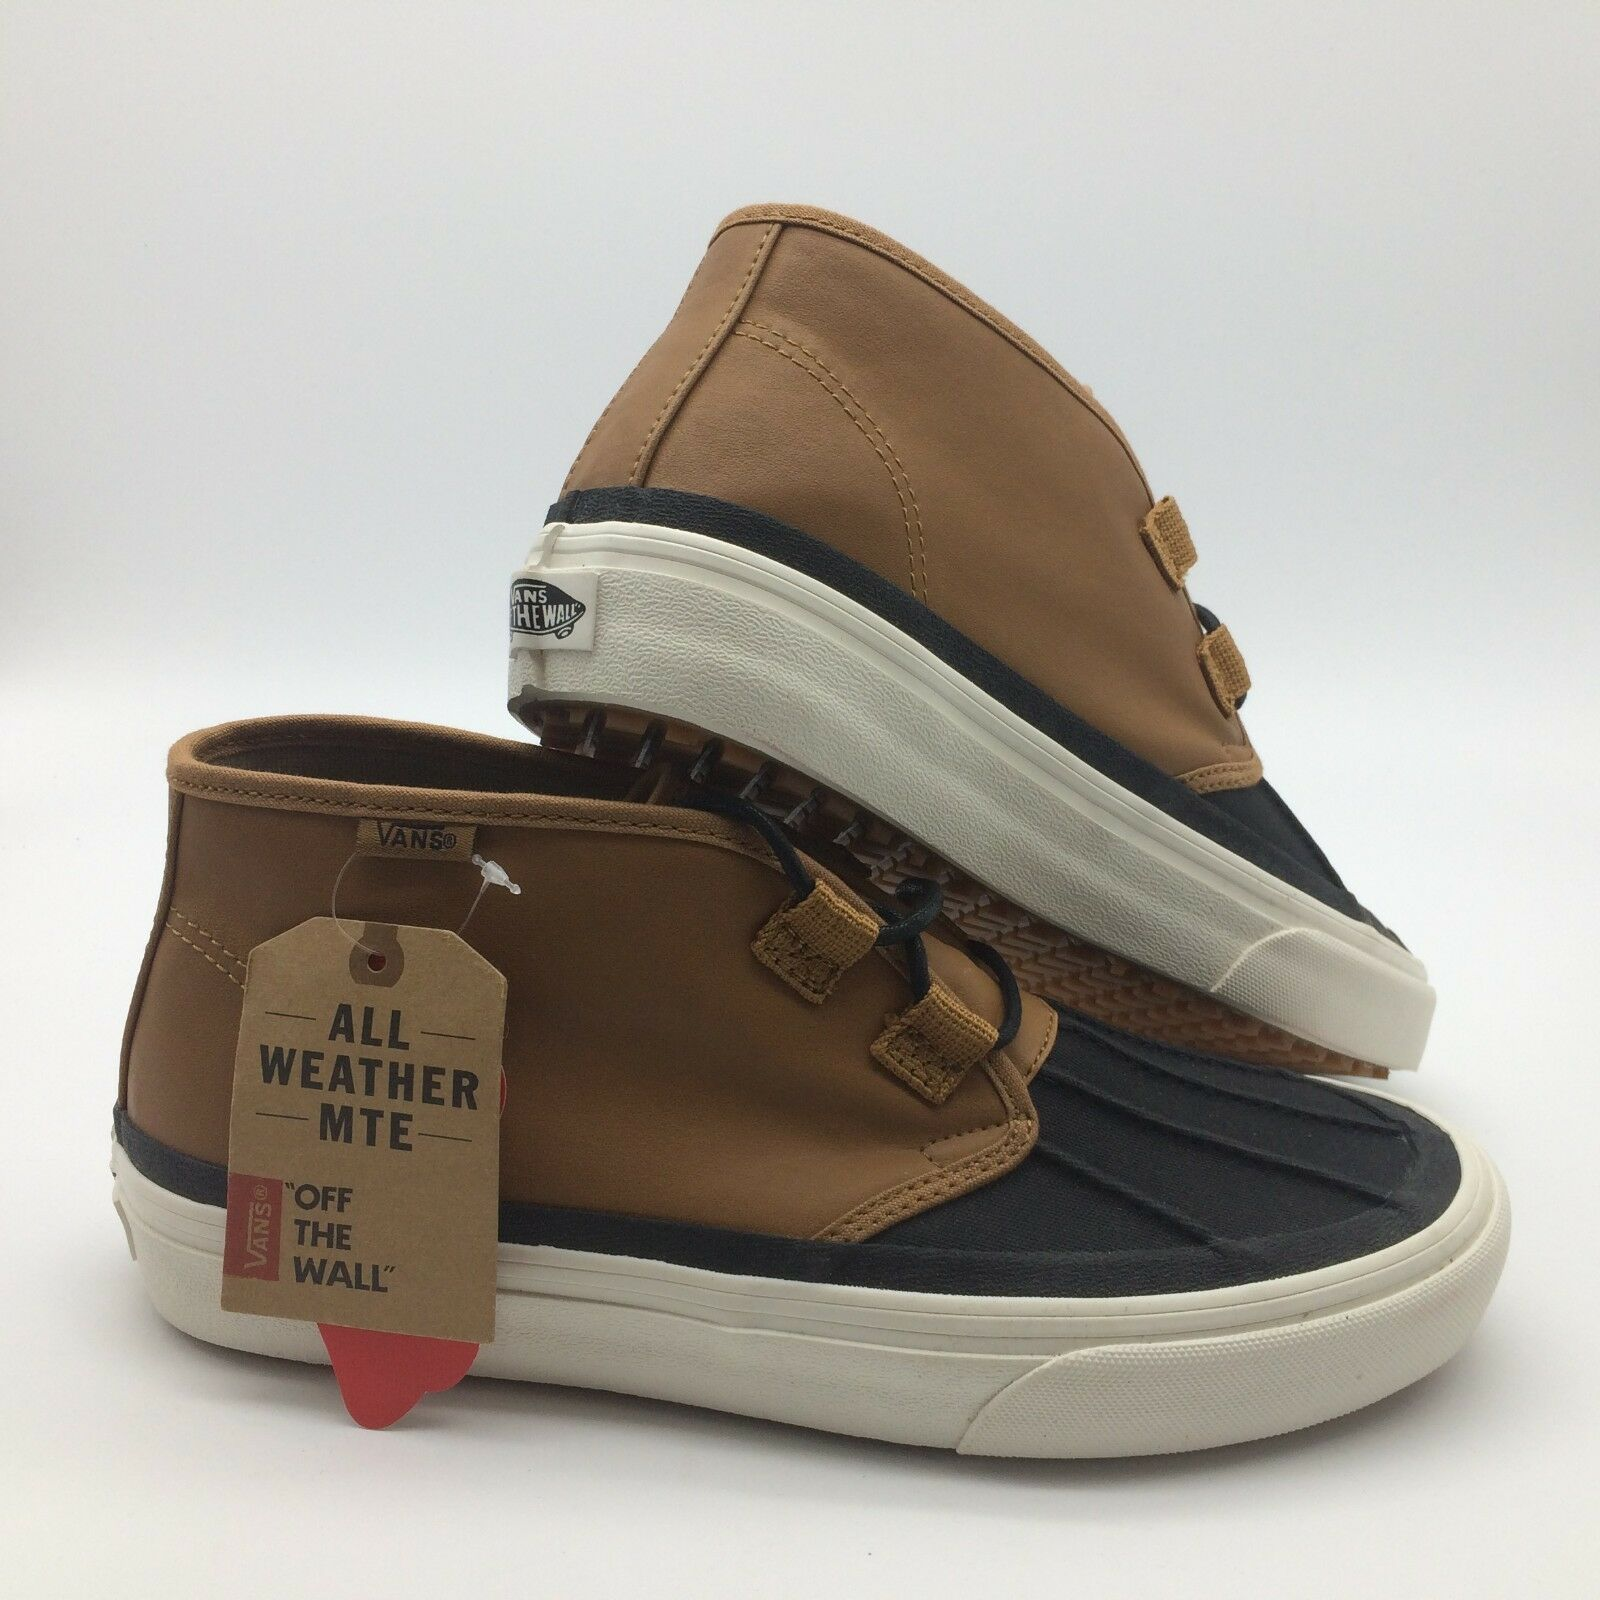 Vans Men's shoes  Prairie Chukka MT  Tan Black